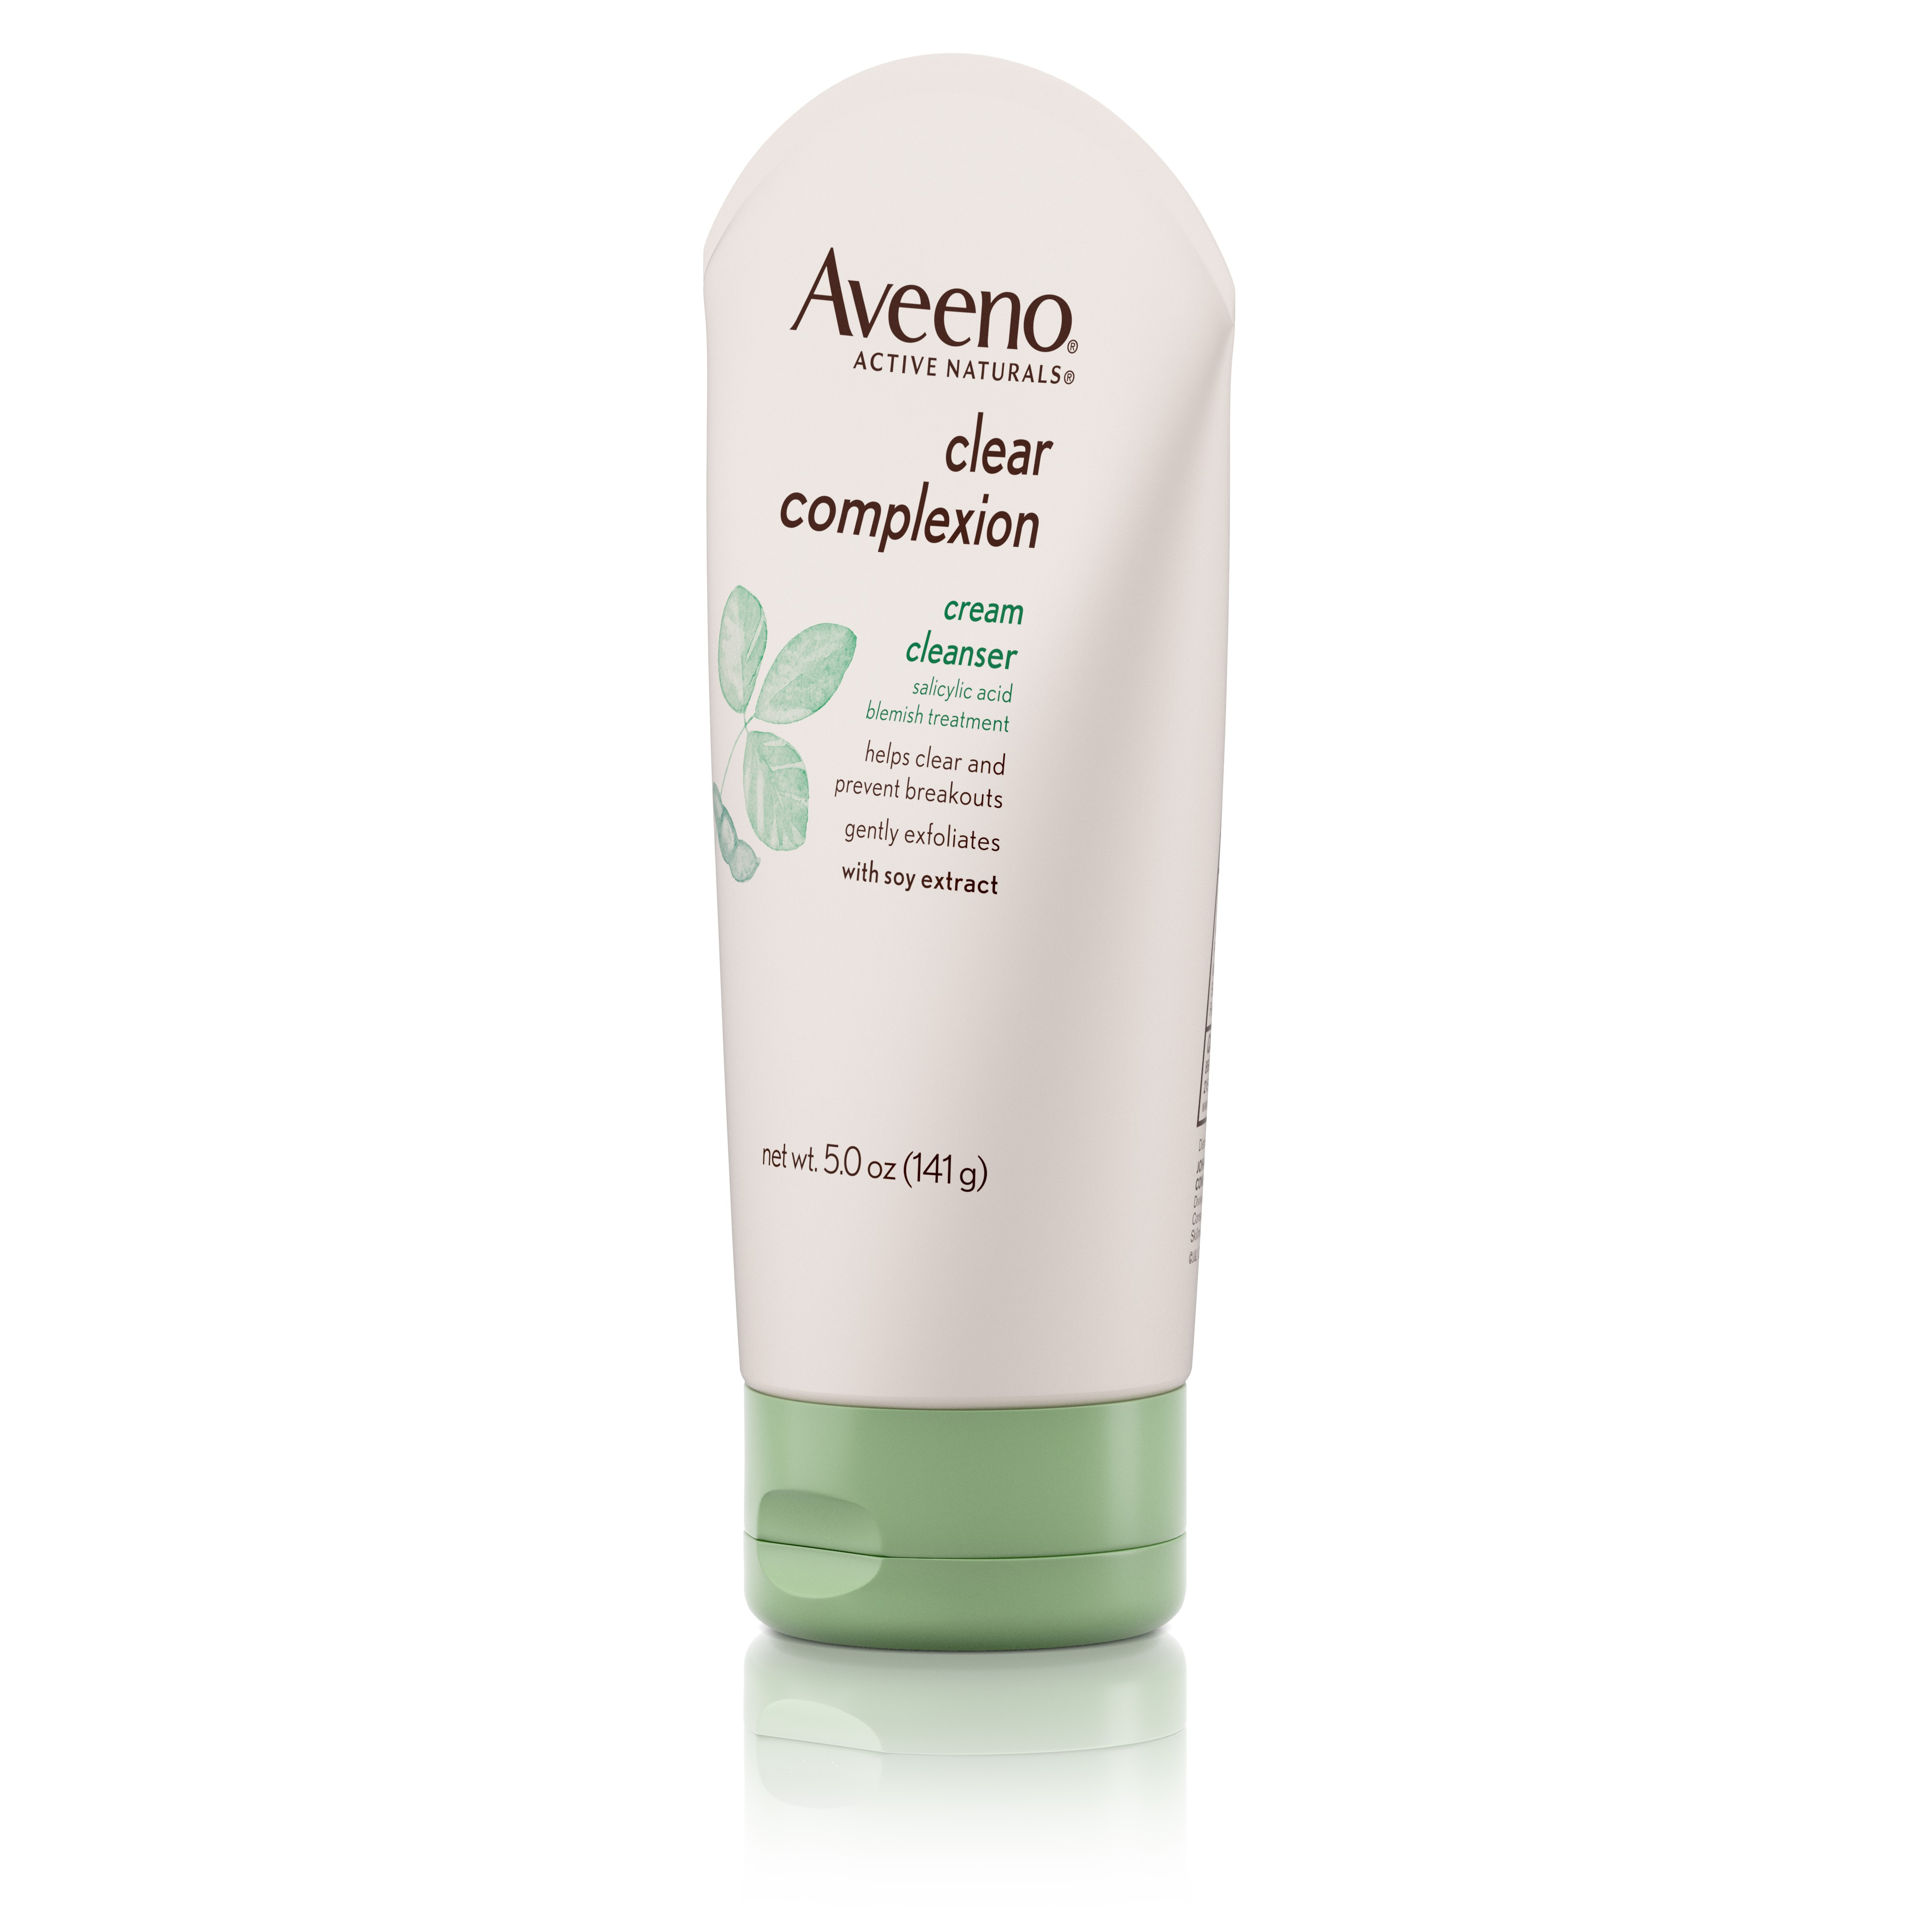 Speaking, Aveeno facial cleansers think